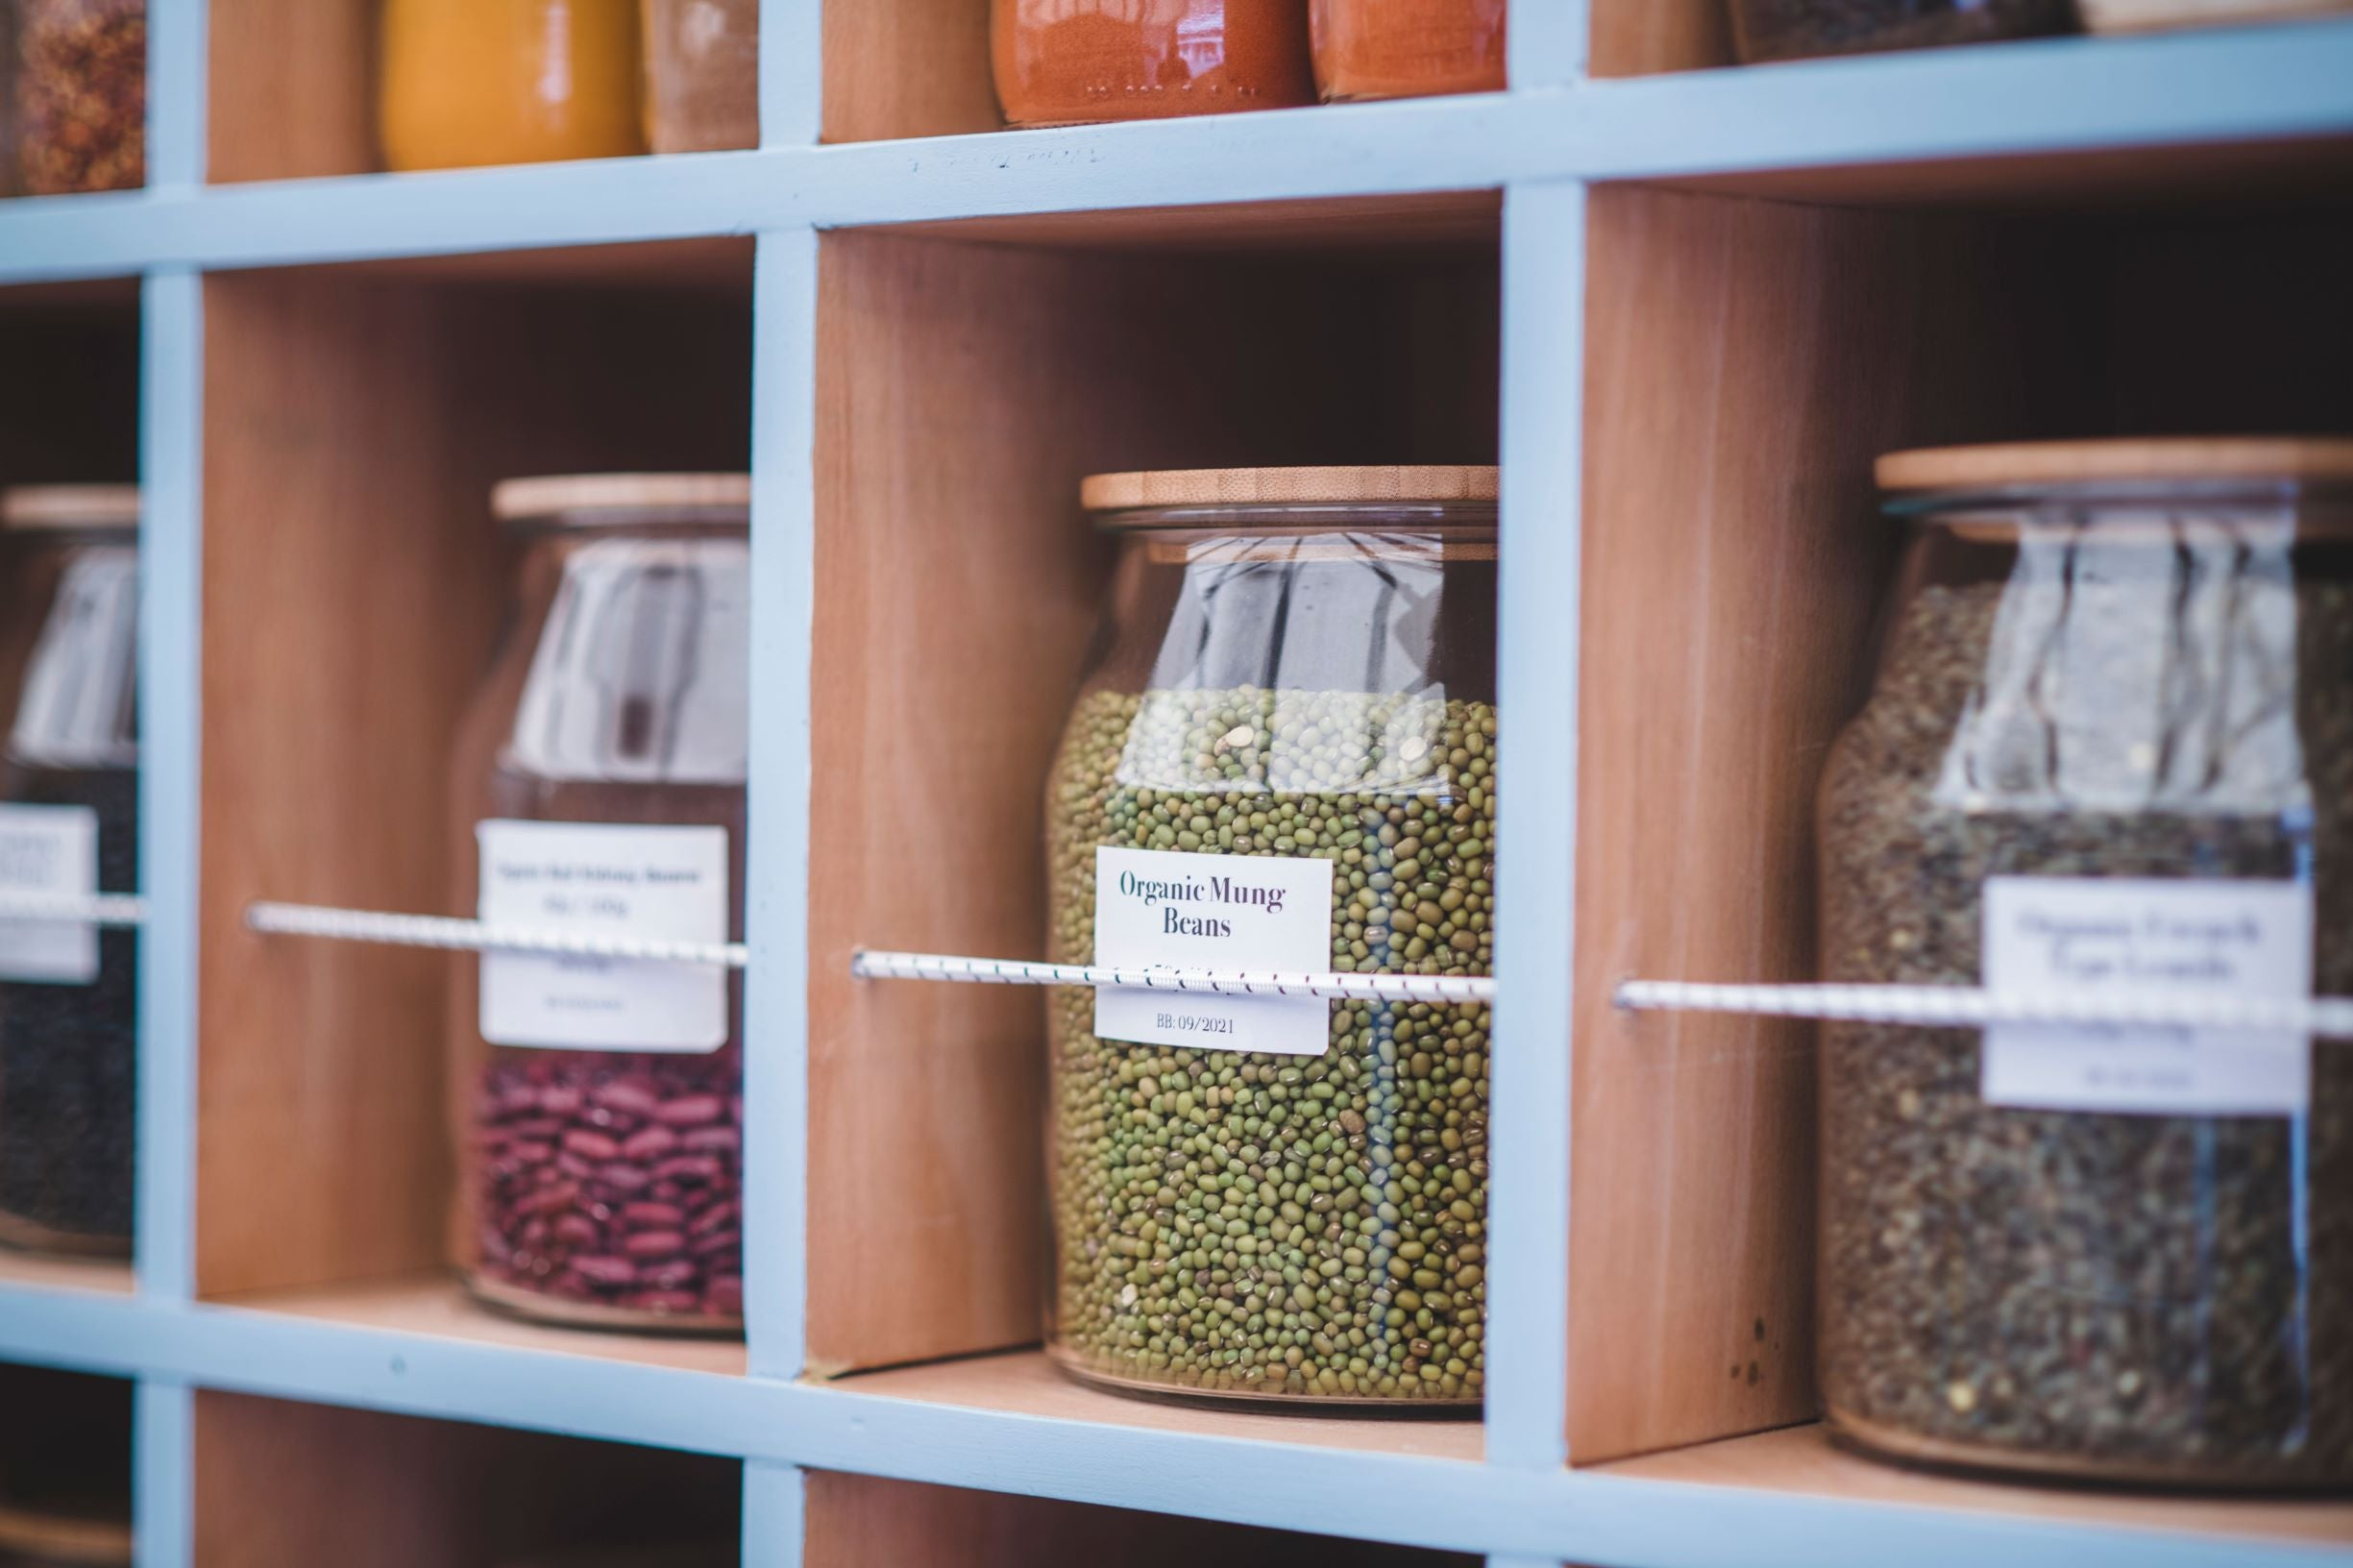 Image of glass jars filled with pulses